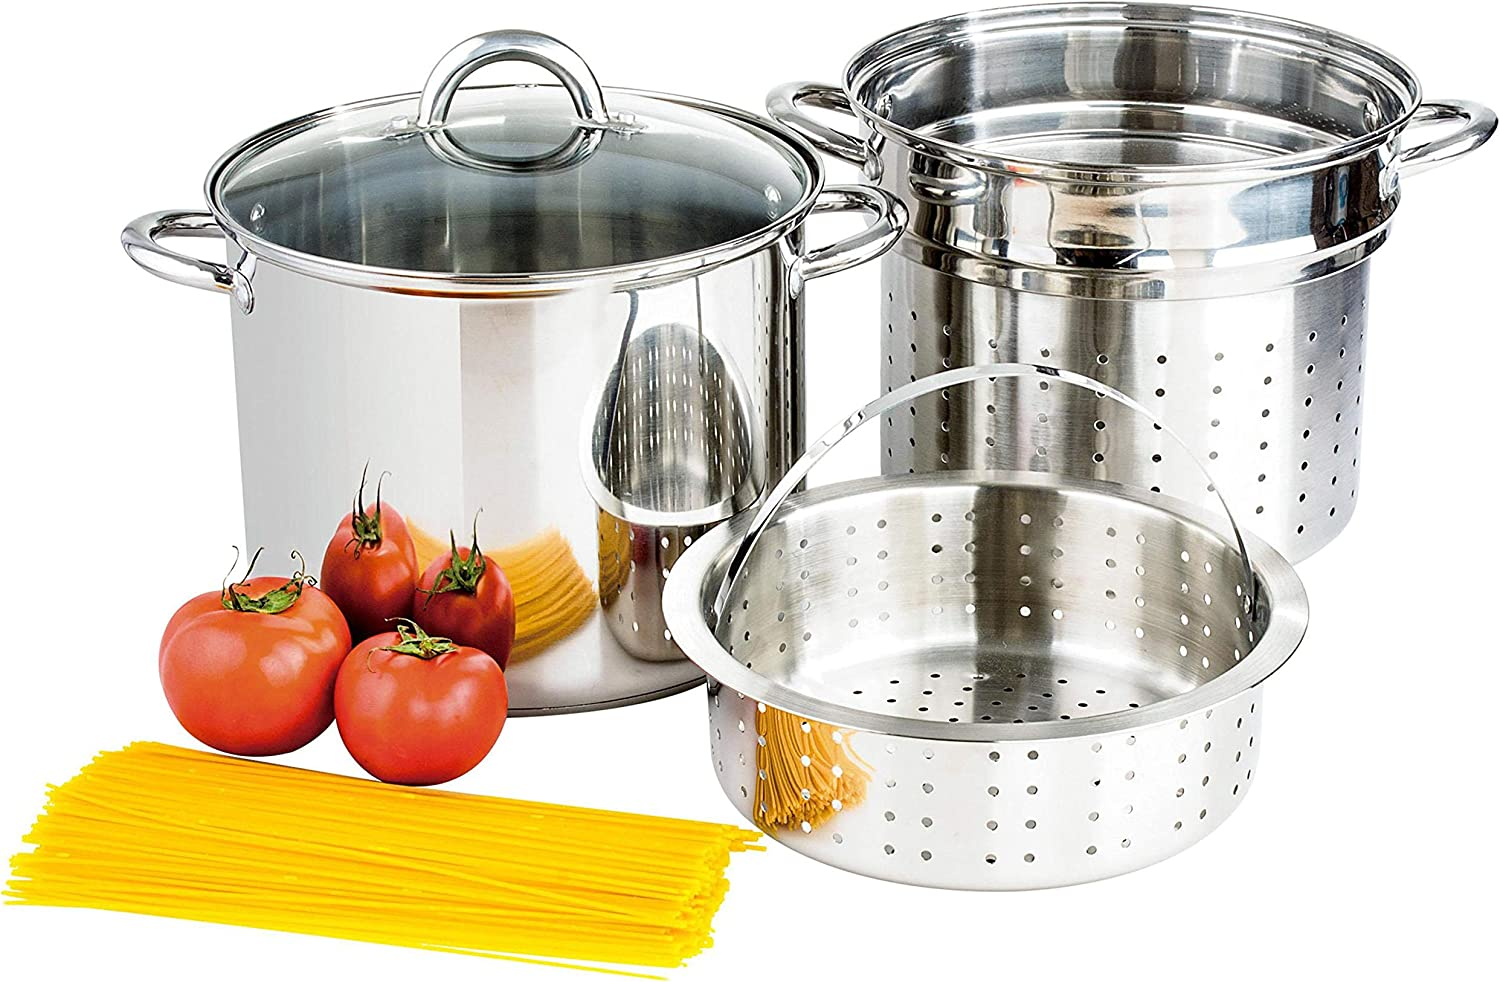 Culinary Edge Stainless Steel 8-Quart Nonstick 4-Piece Multi-Cooker with Steamer and Pasta Pot Cookware Set